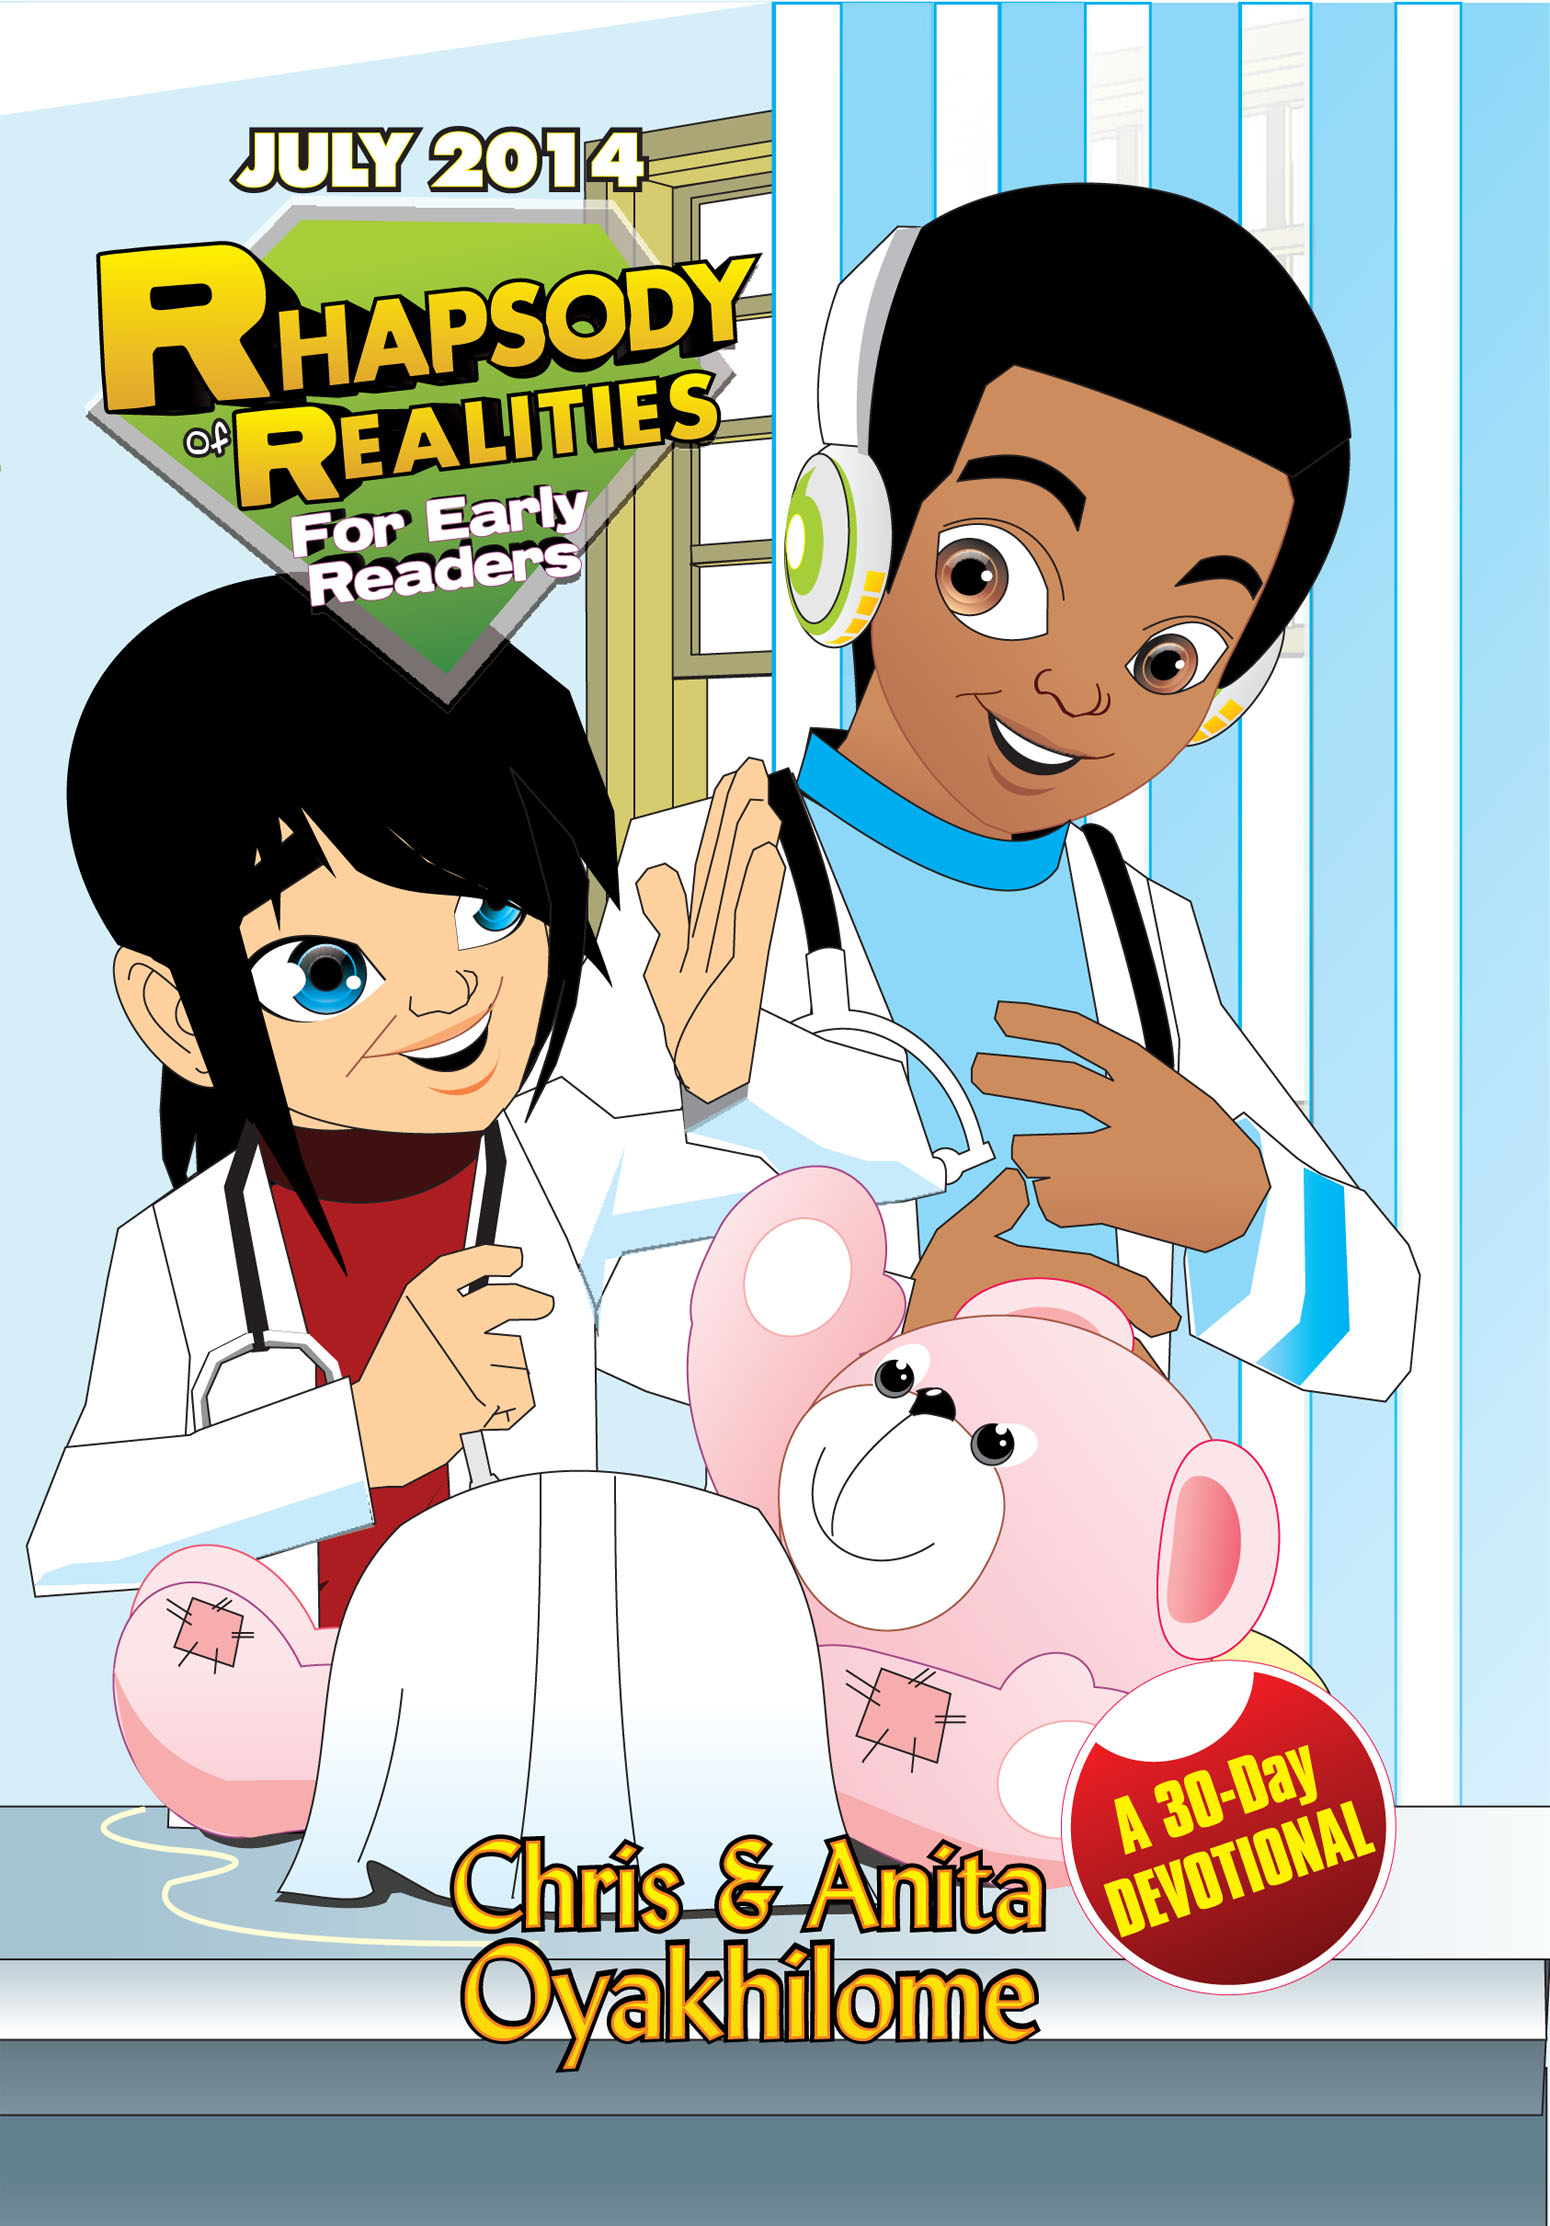 Pastor Chris and Anita Oyakhilome - Rhapsody of Realities for Early Readers – July 2014 Edition